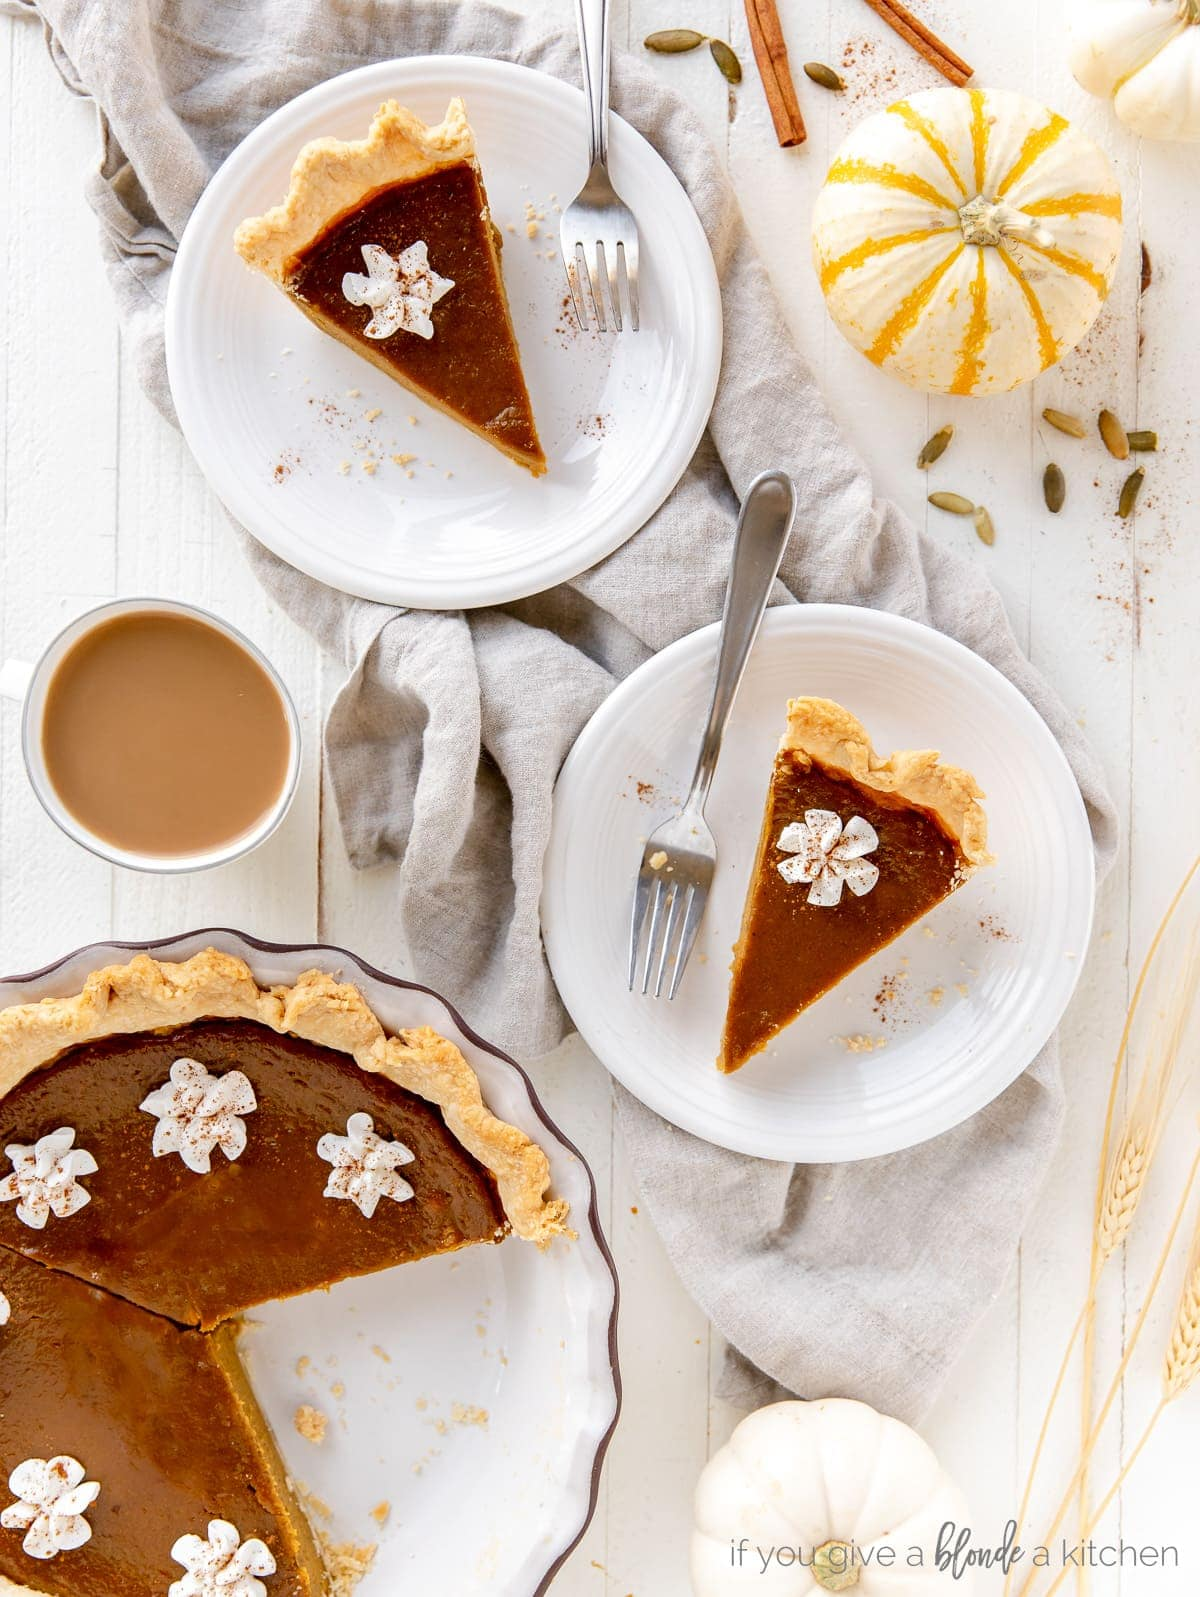 pumpkin pie slices on round plates with forks next to pie plate with remaining pie